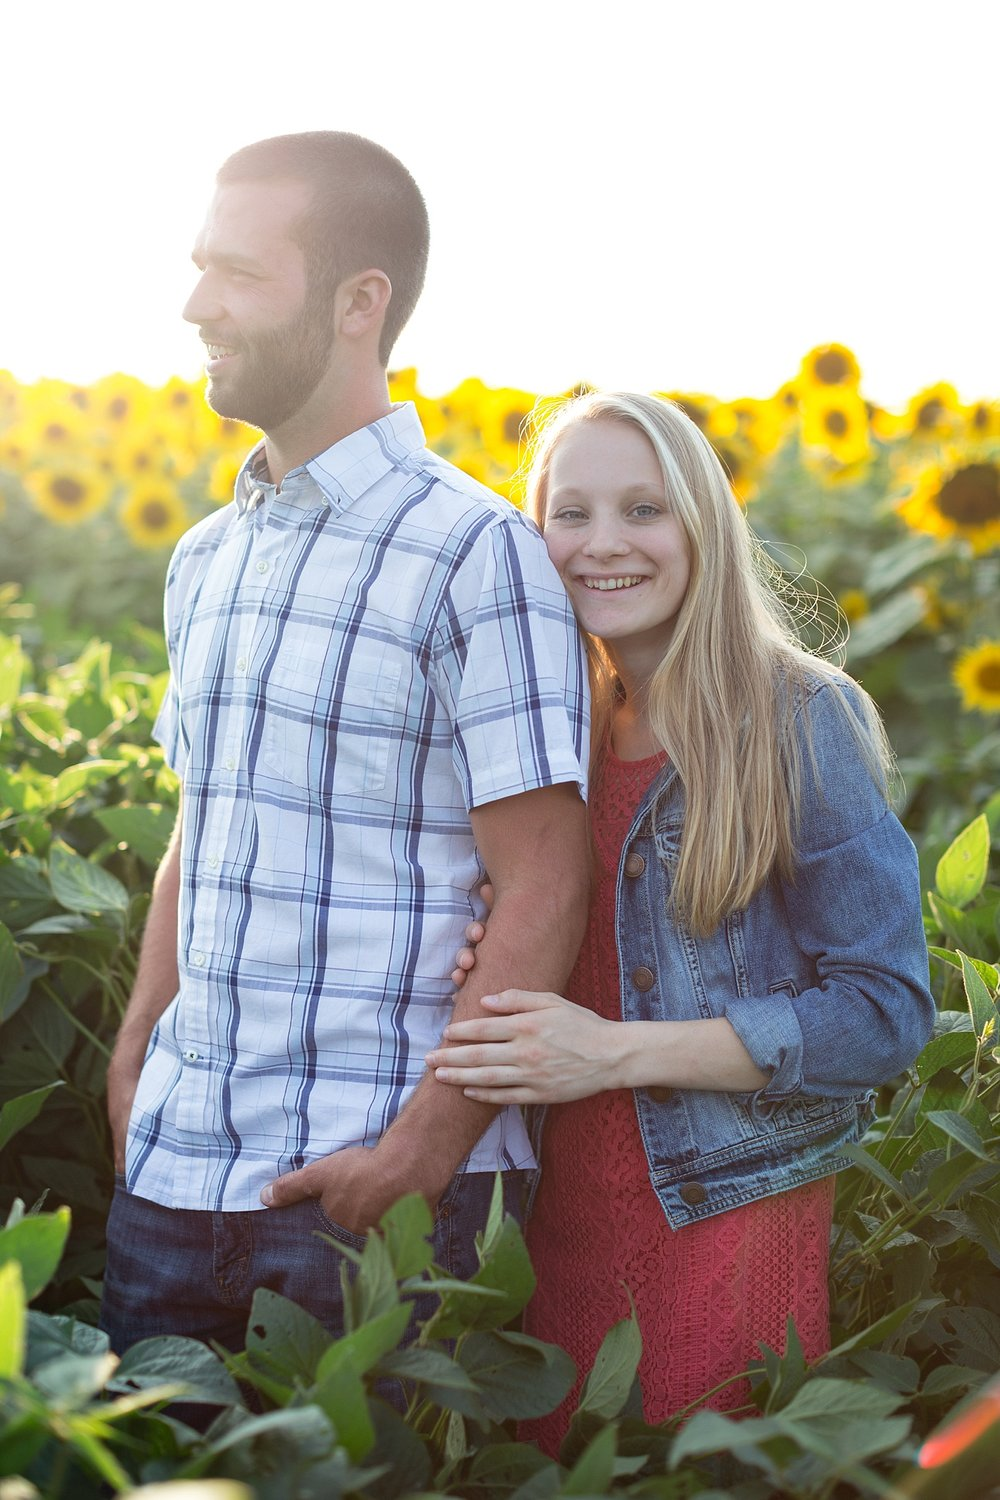 Romantic engagement session in sunflower field lancaster pa wedding photographer photo_0012.jpg